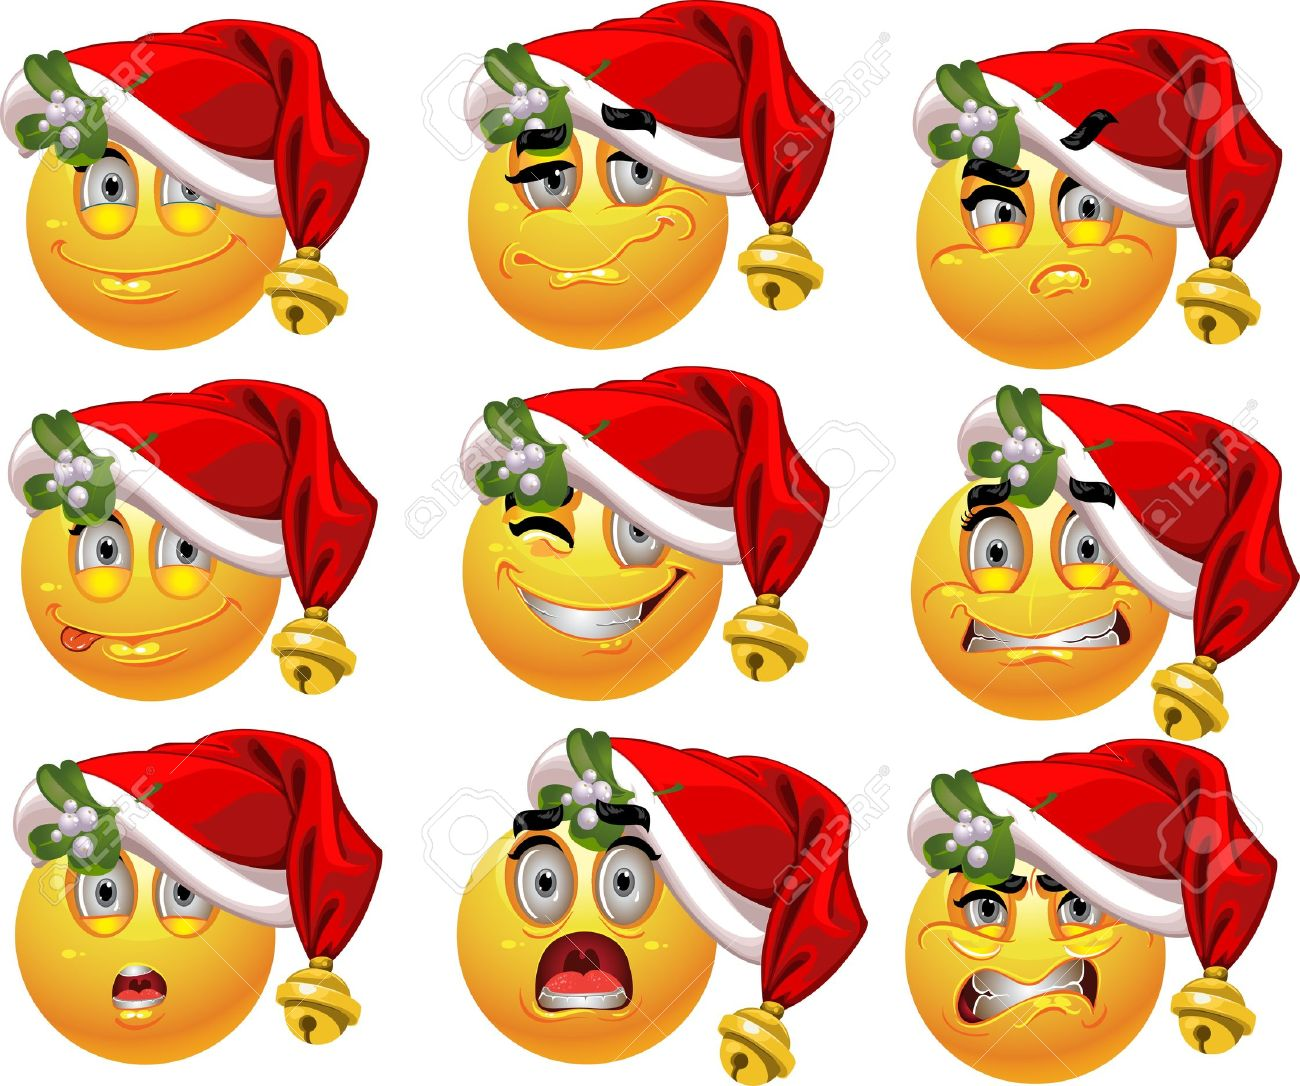 Christmas Smiley Faces Images & Stock Pictures. Royalty Free ...